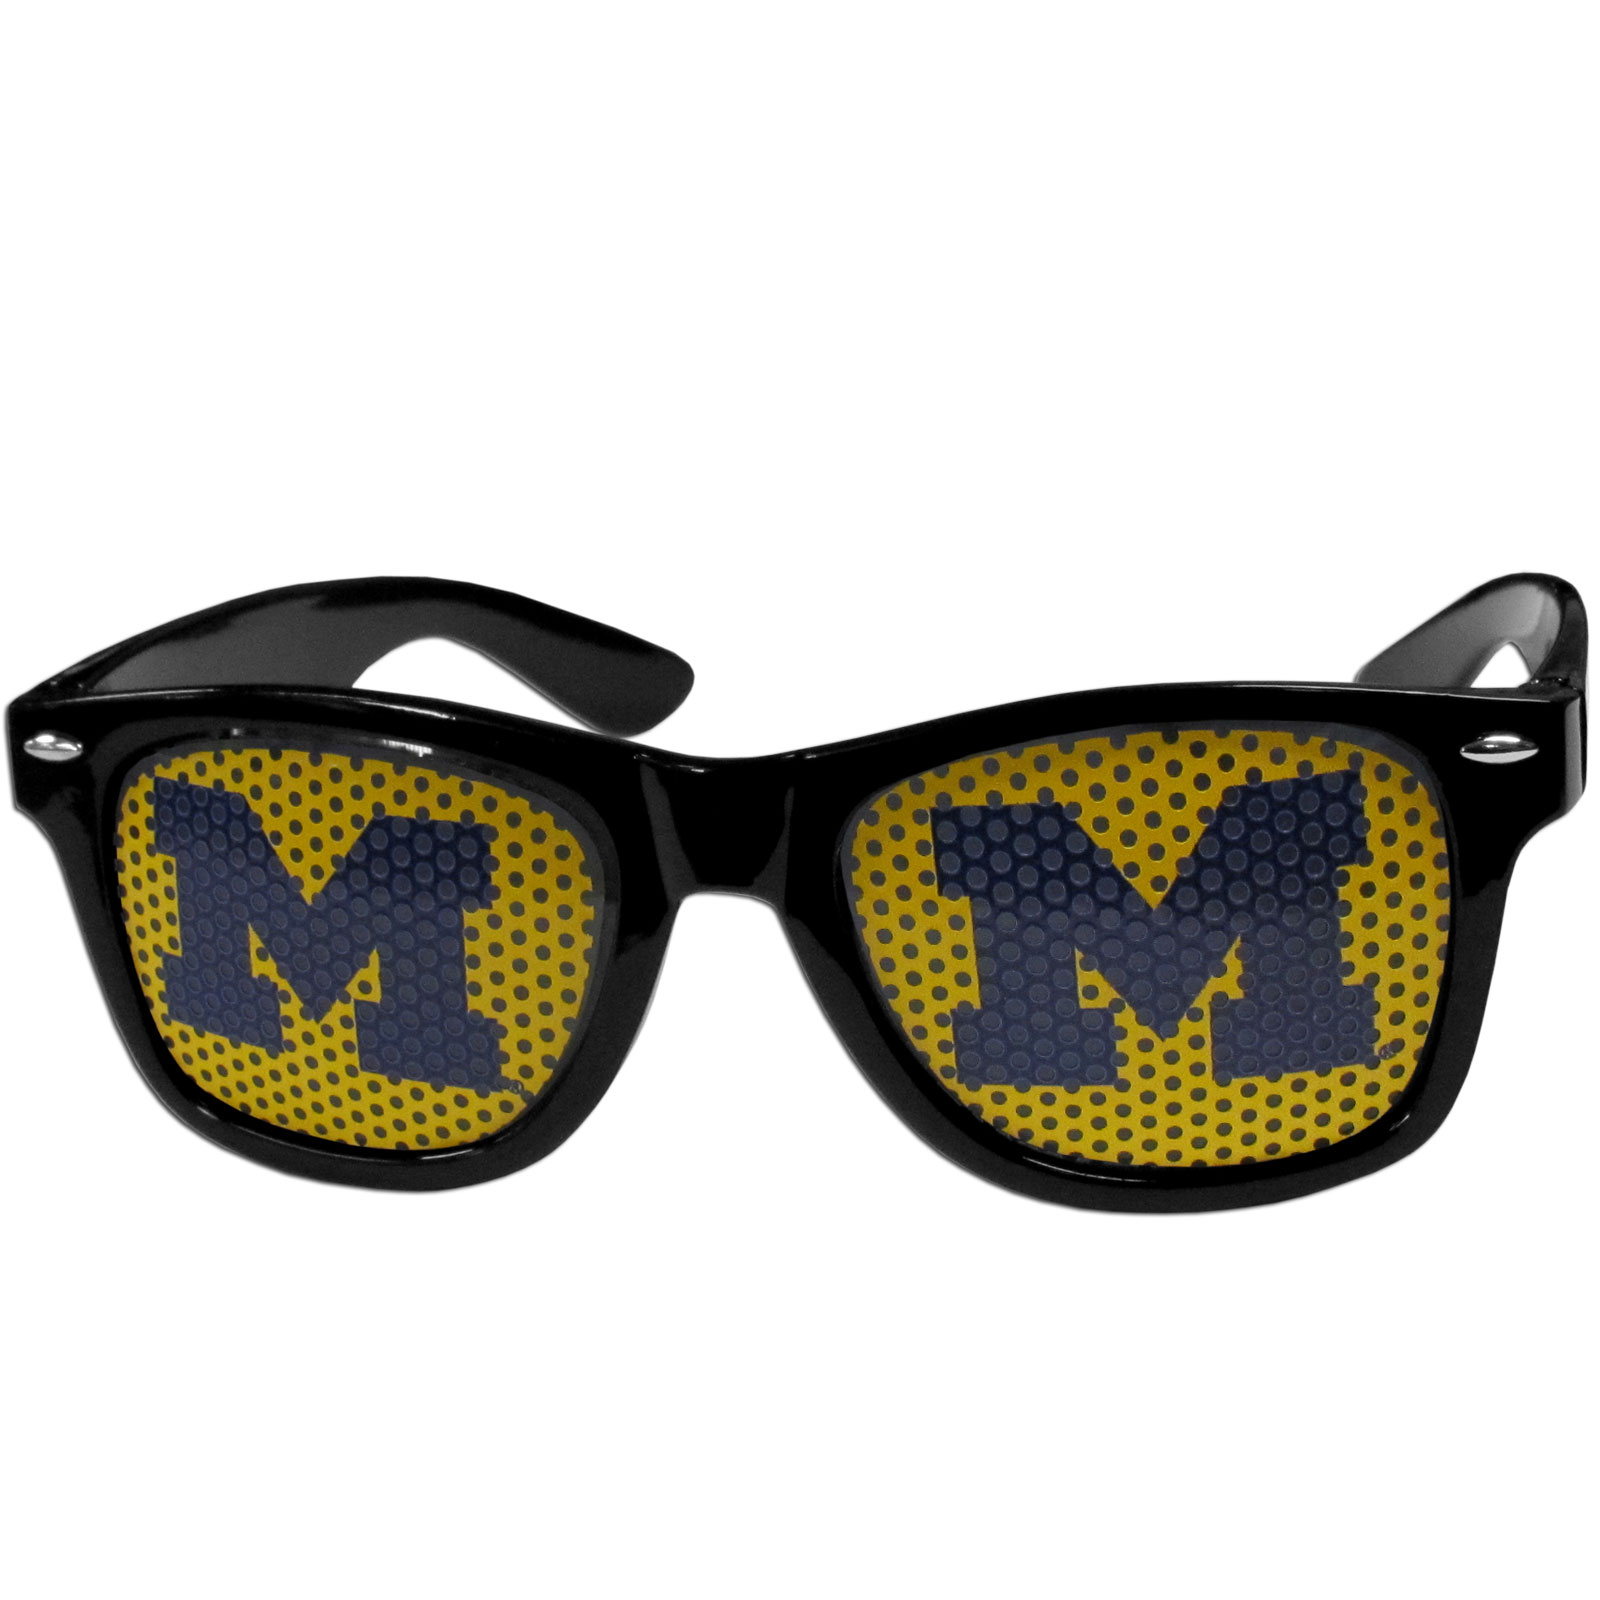 Michigan Wolverines Game Day Shades - Our officially licensed game day shades are the perfect accessory for the devoted Michigan Wolverines fan! The sunglasses have durable polycarbonate frames with flex hinges for comfort and damage resistance. The lenses feature brightly colored team clings that are perforated for visibility.